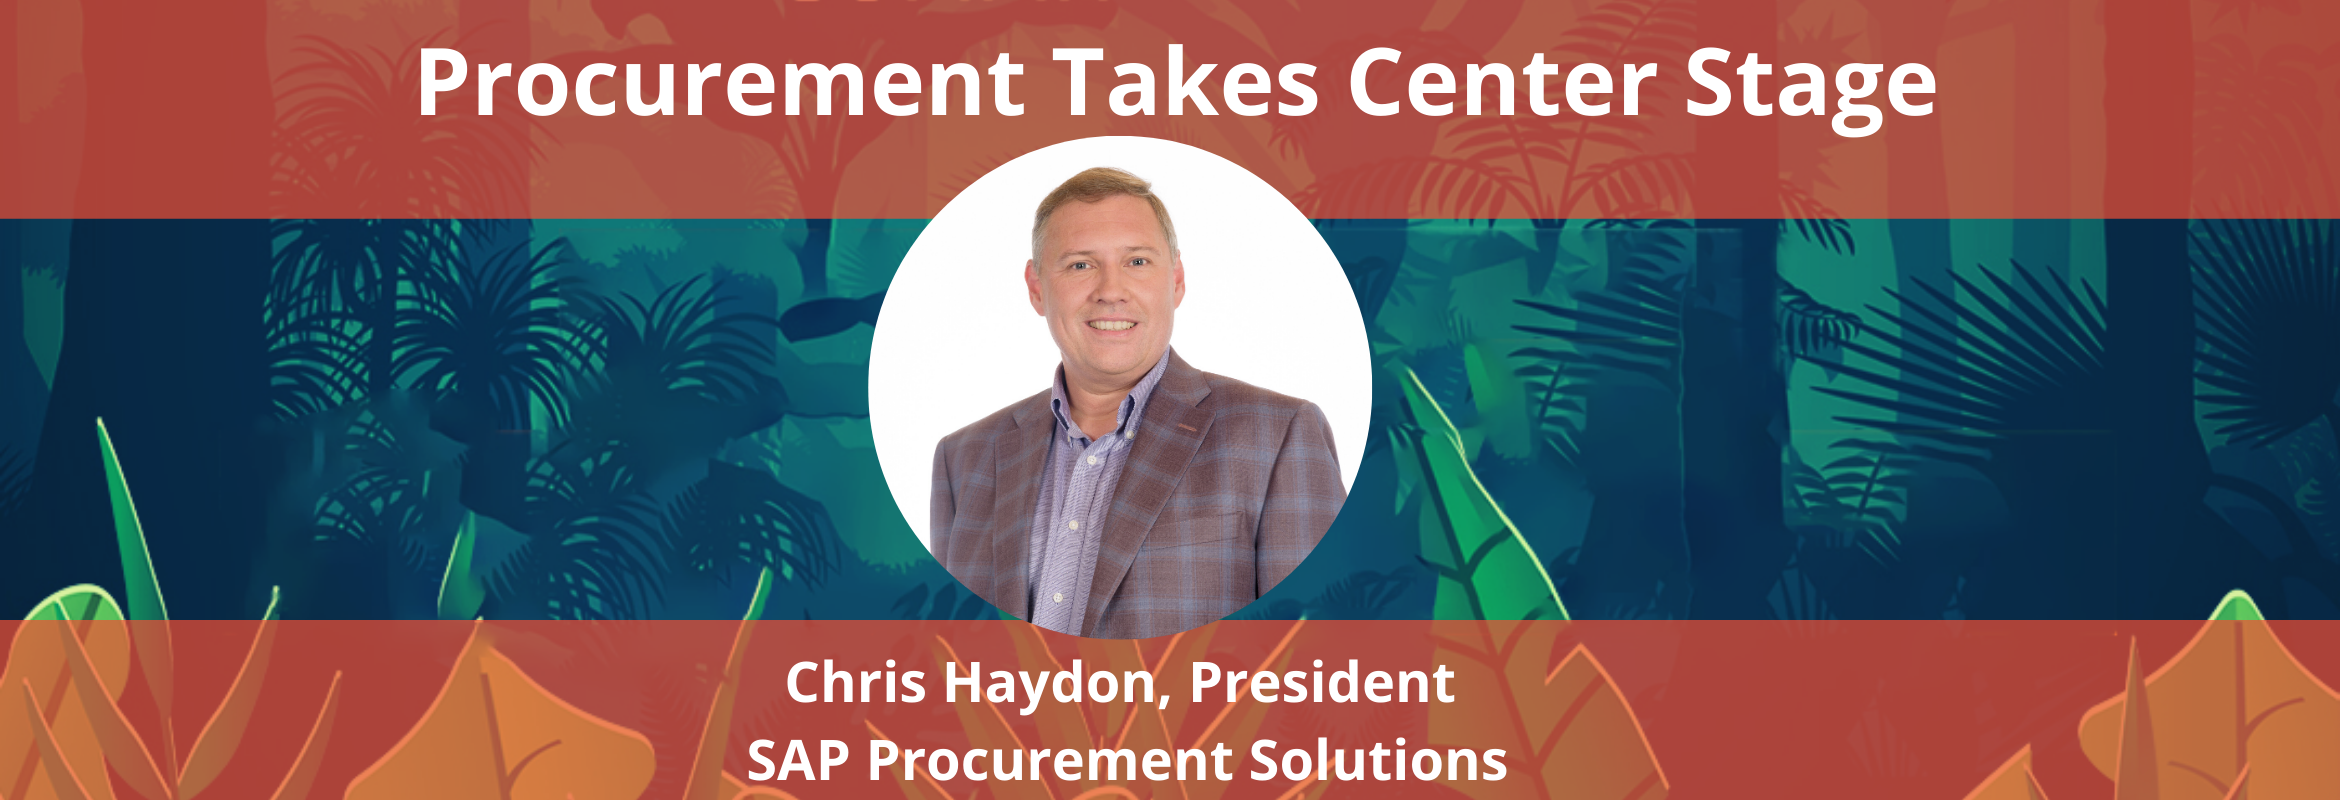 Chris Haydon is the President of SAP Procurement Solutions